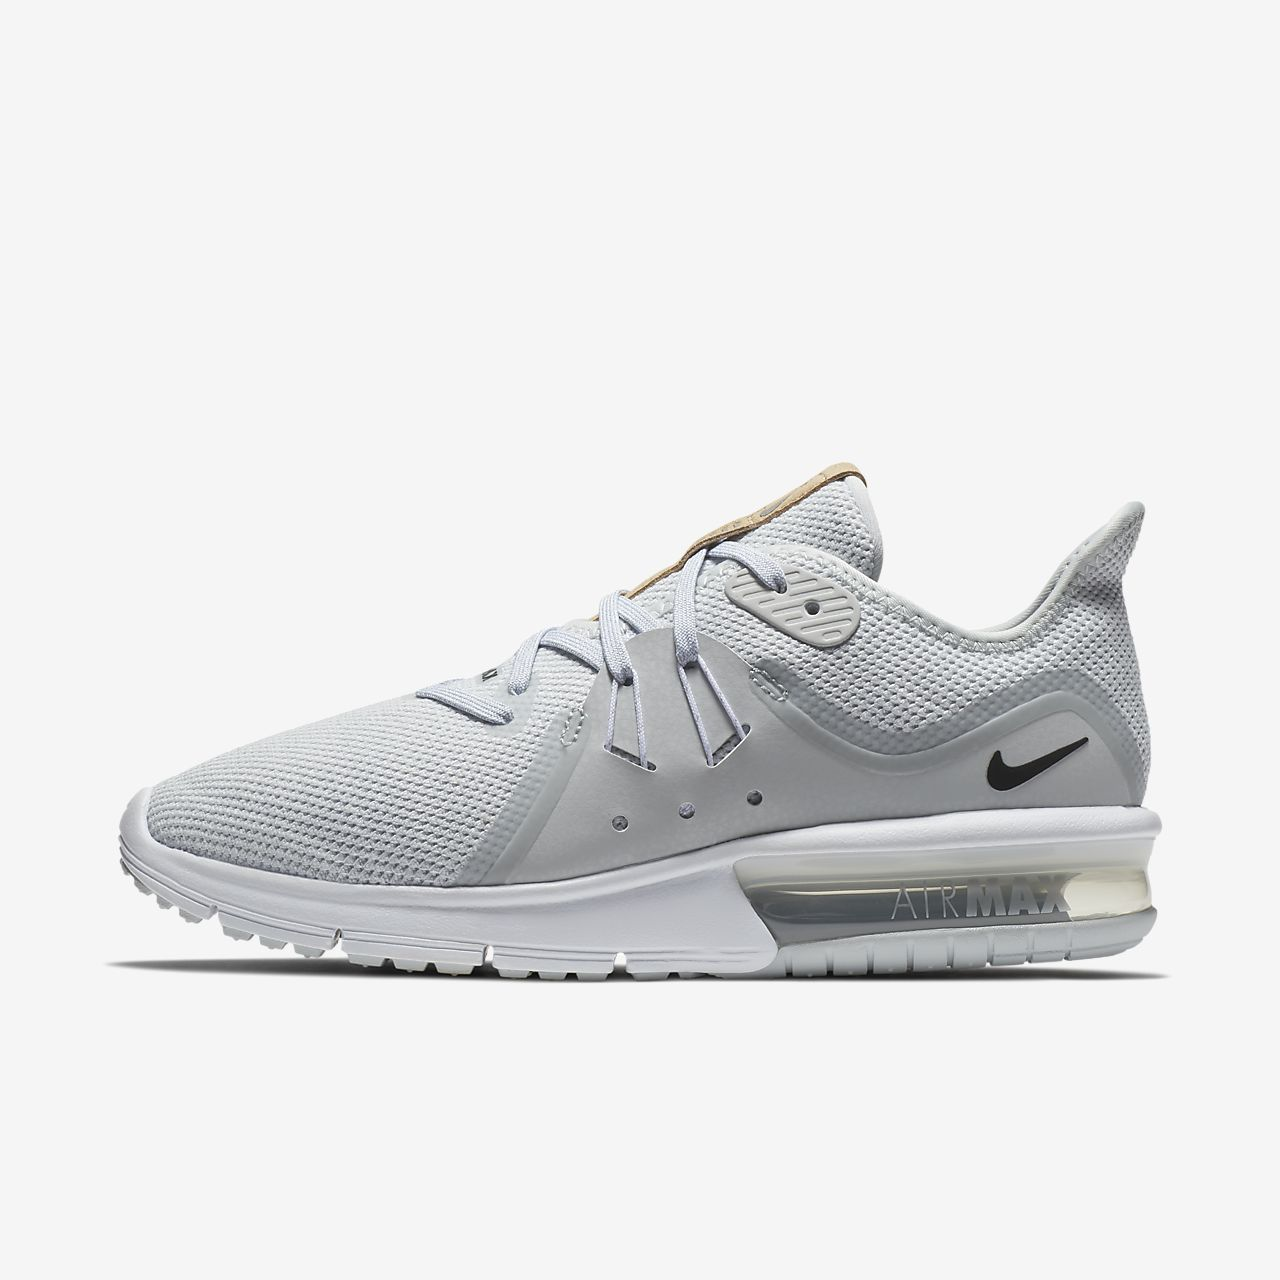 8010a5c46978 Nike Air Max Sequent 3 Women s Shoe. Nike.com